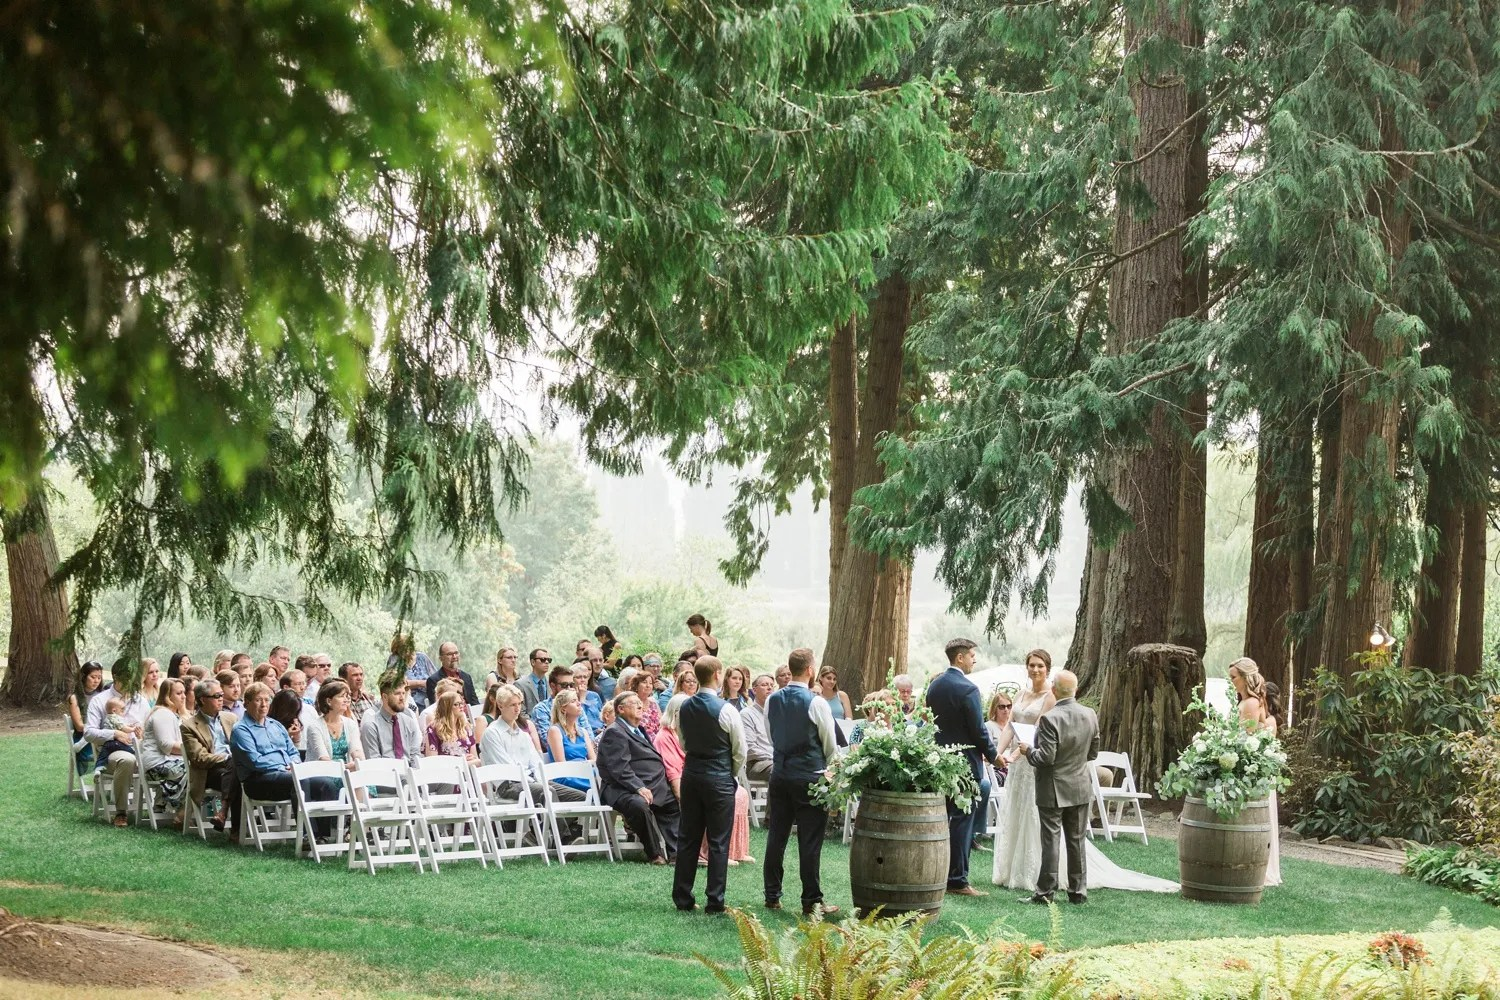 A photo of a wedding ceremony at Chateau Lill in Woodinville, a wedding venue near Seattle, WA. | Joanna Monger Photography | Seattle & Snohomish Photographer